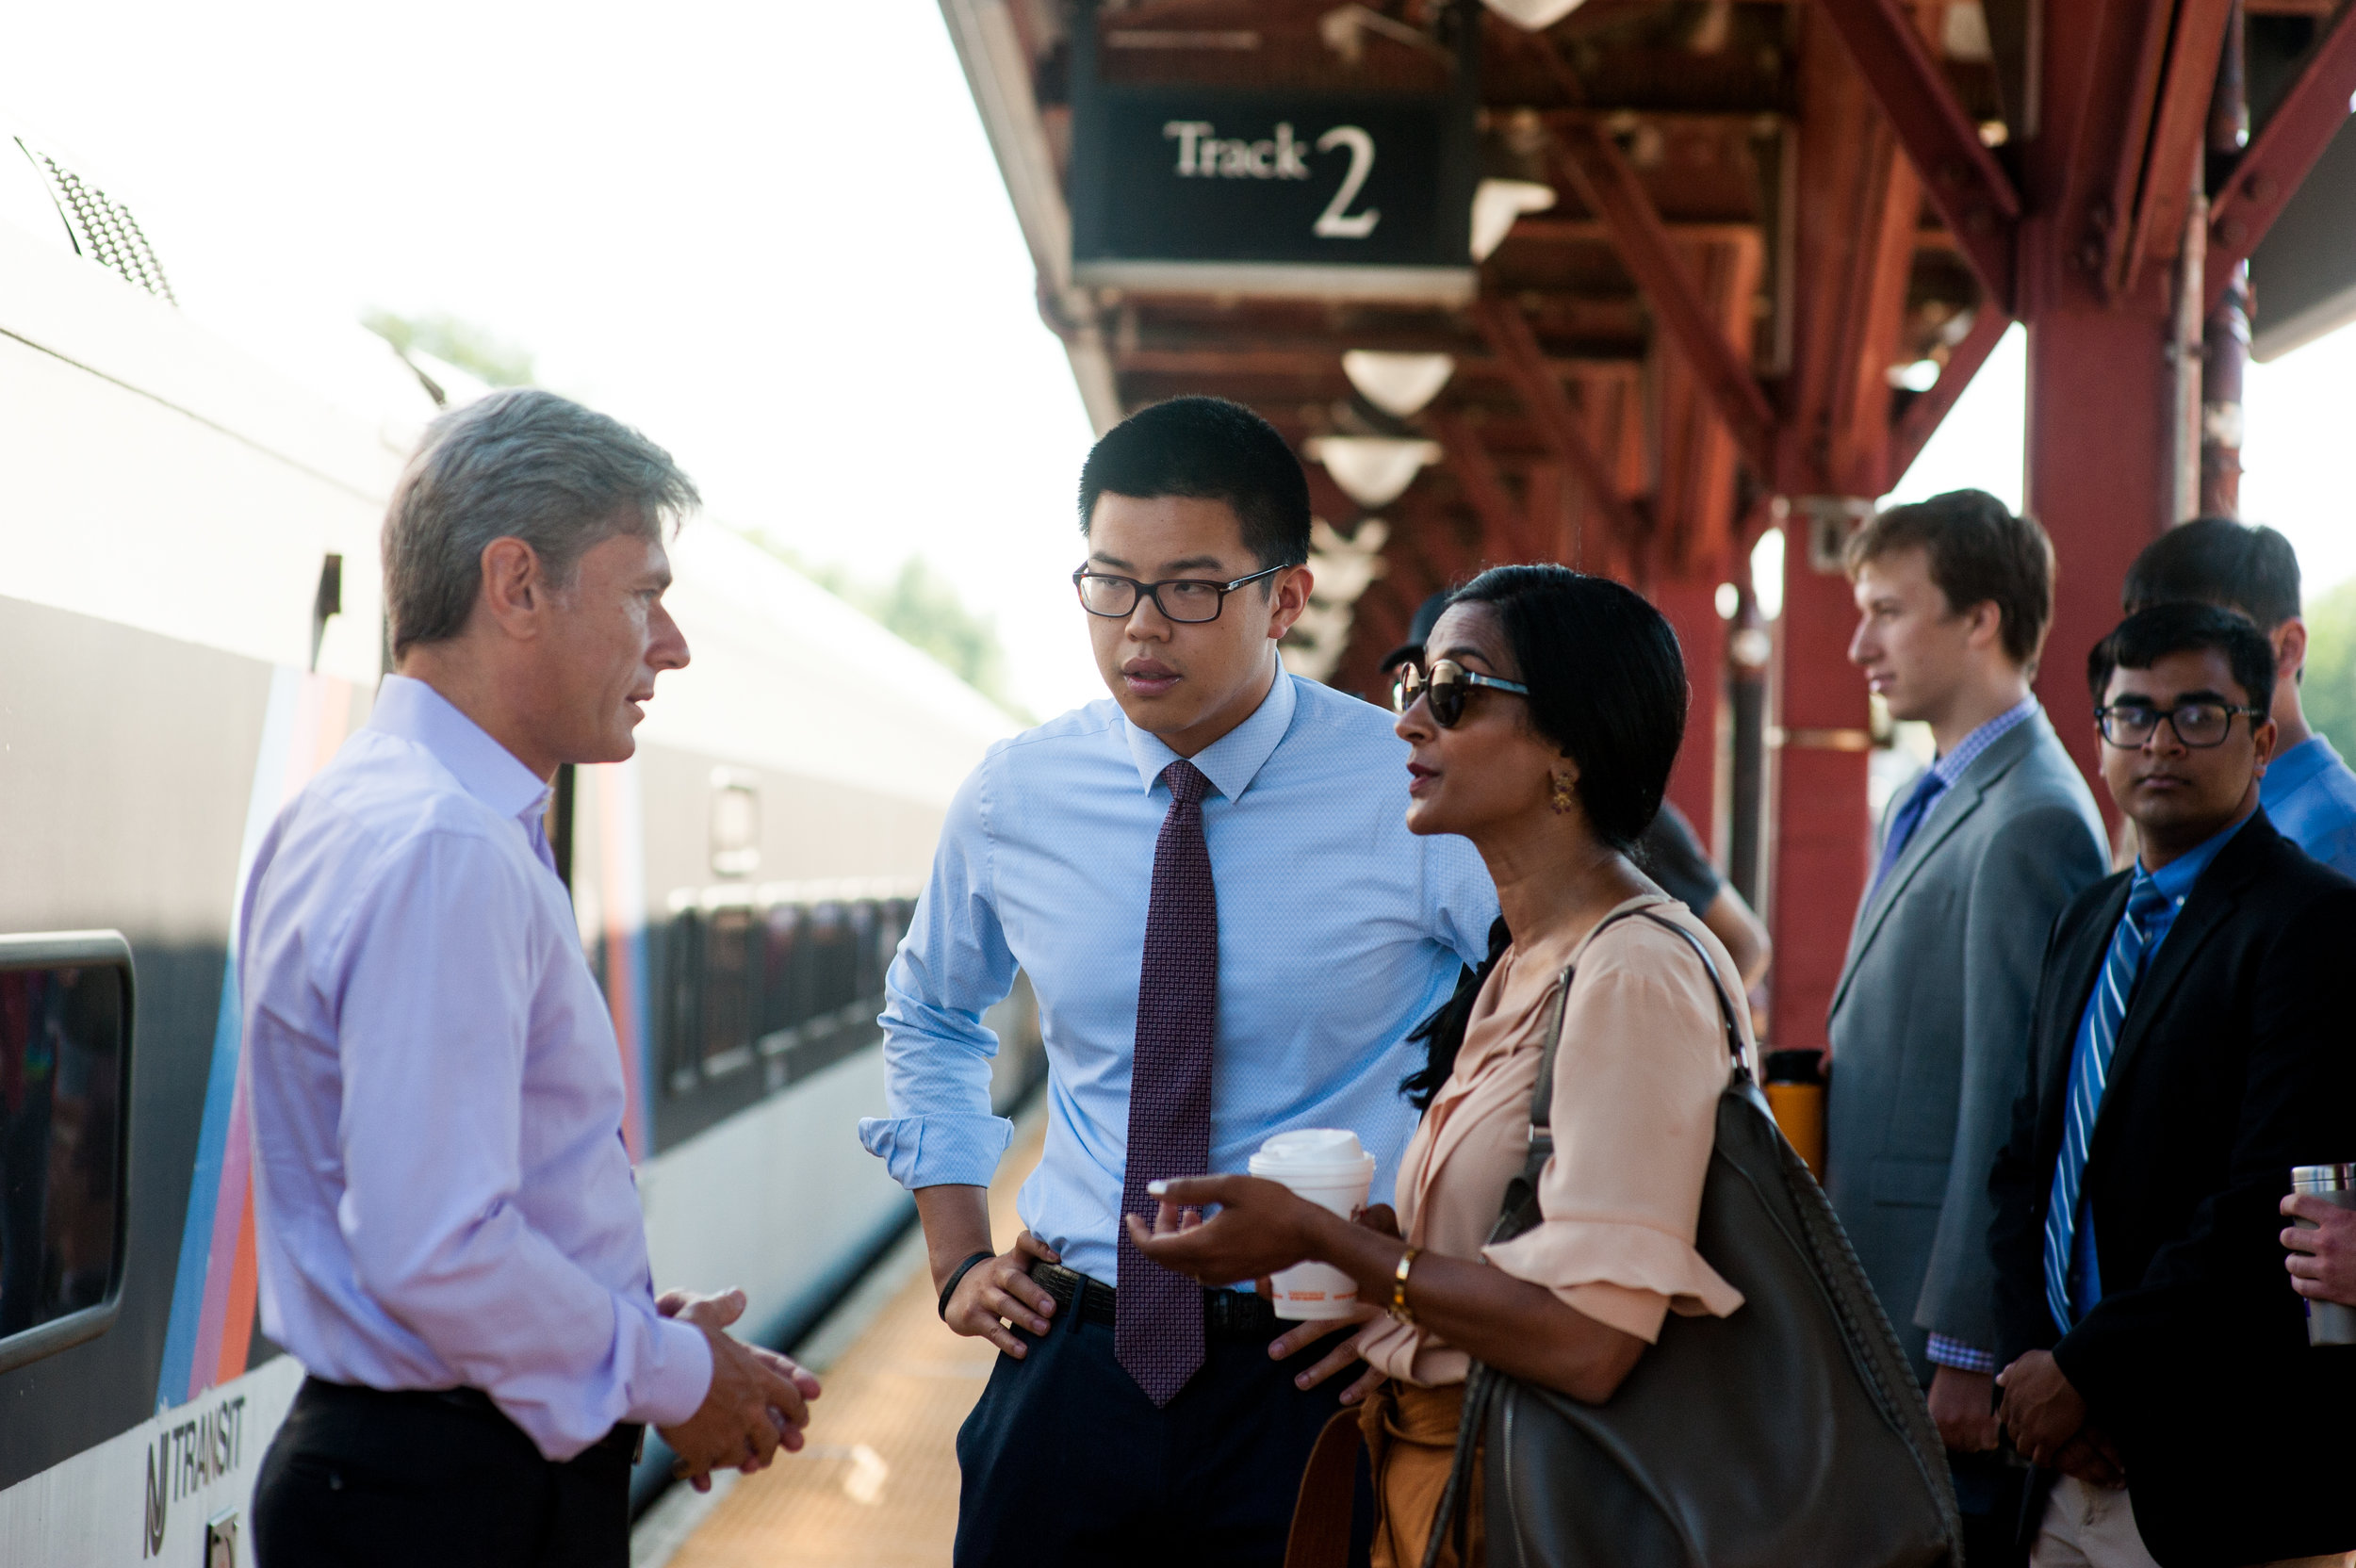 Tom Malinowski Touring Train Station